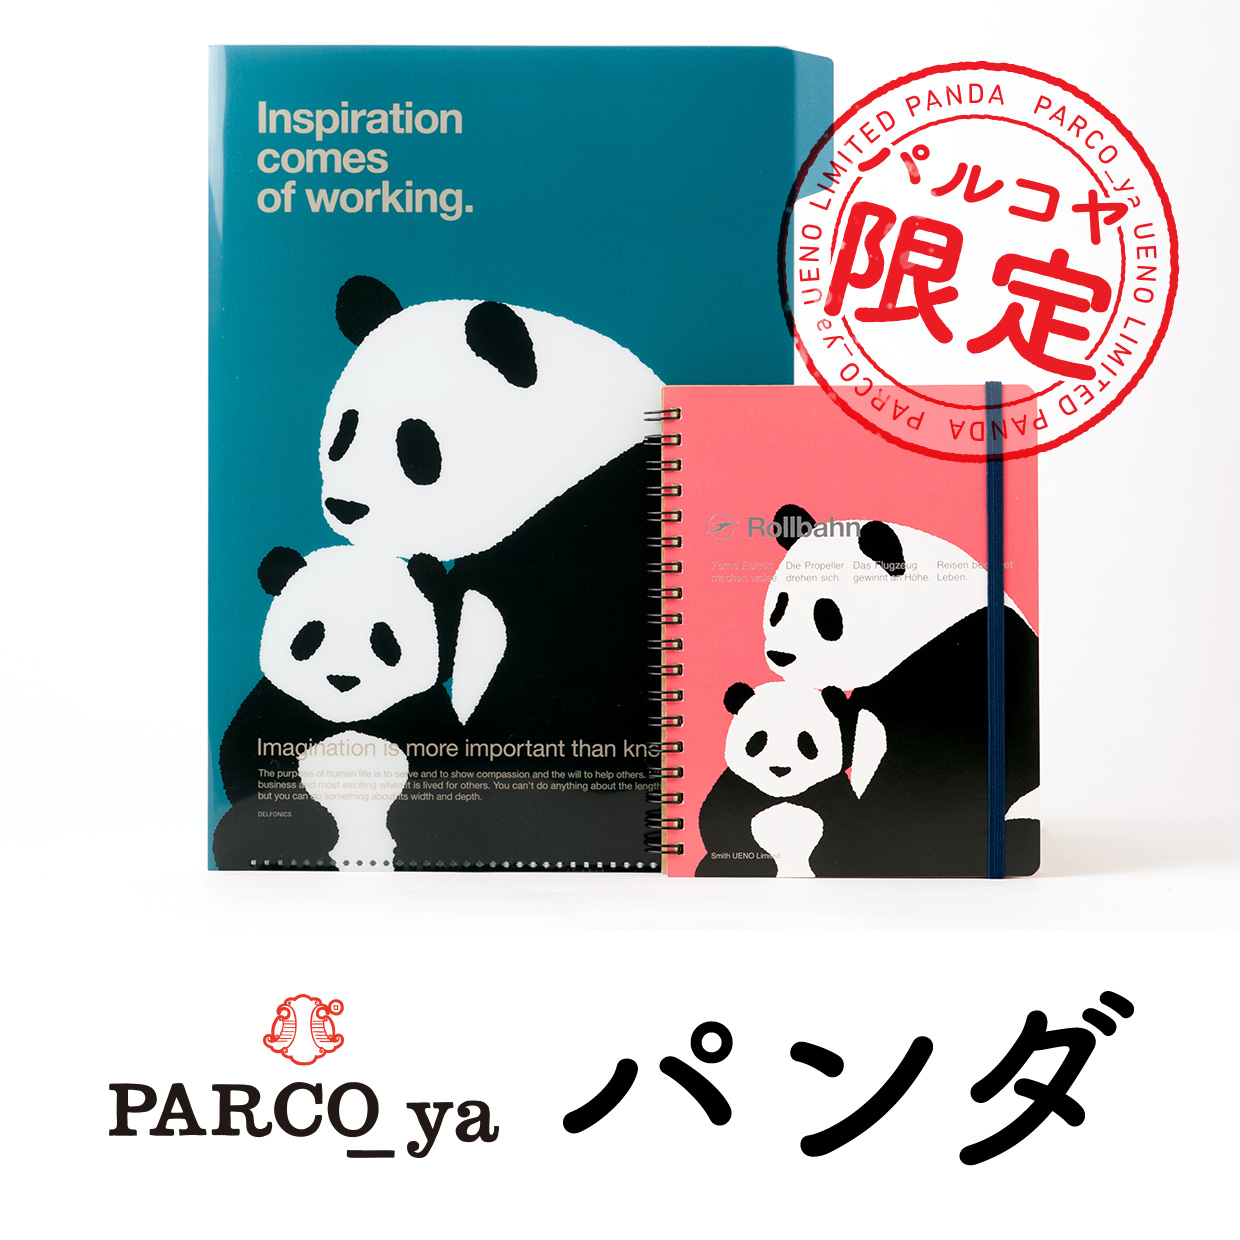 PARCO_yaパンダグッズ